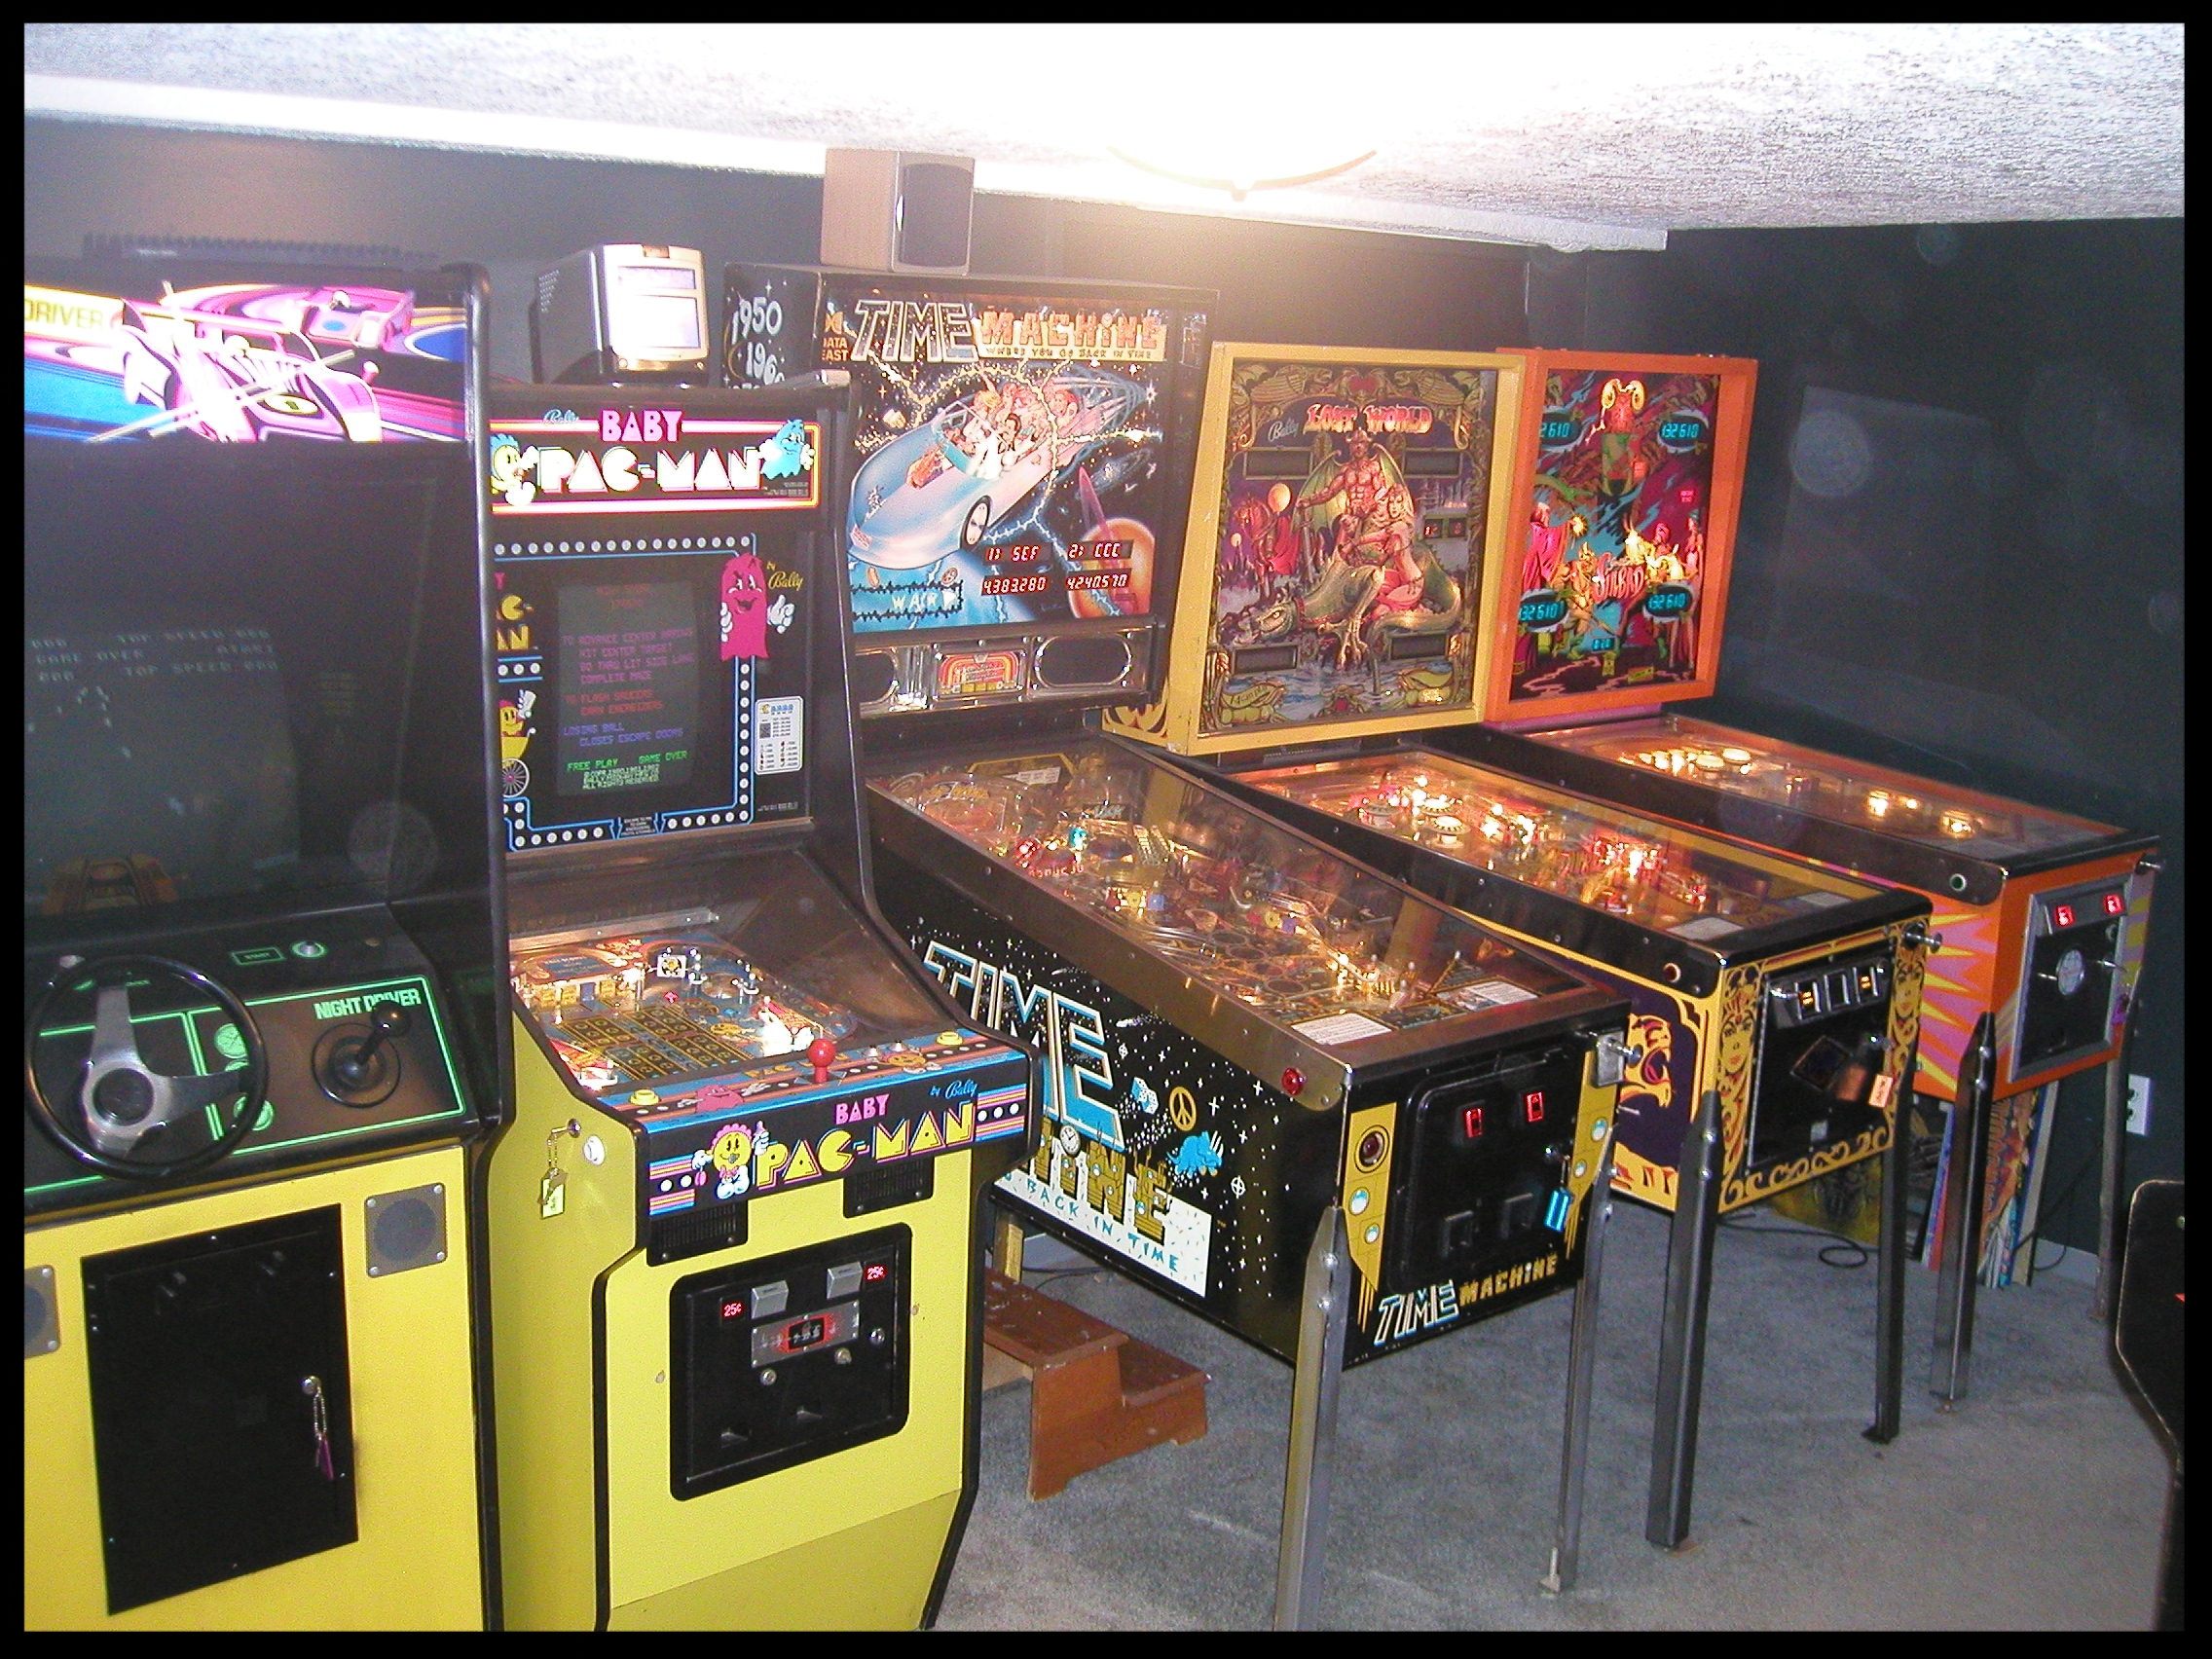 From left to right: Night Driver, Baby Pac-Man, Time Machine, Lost World, Sinbad